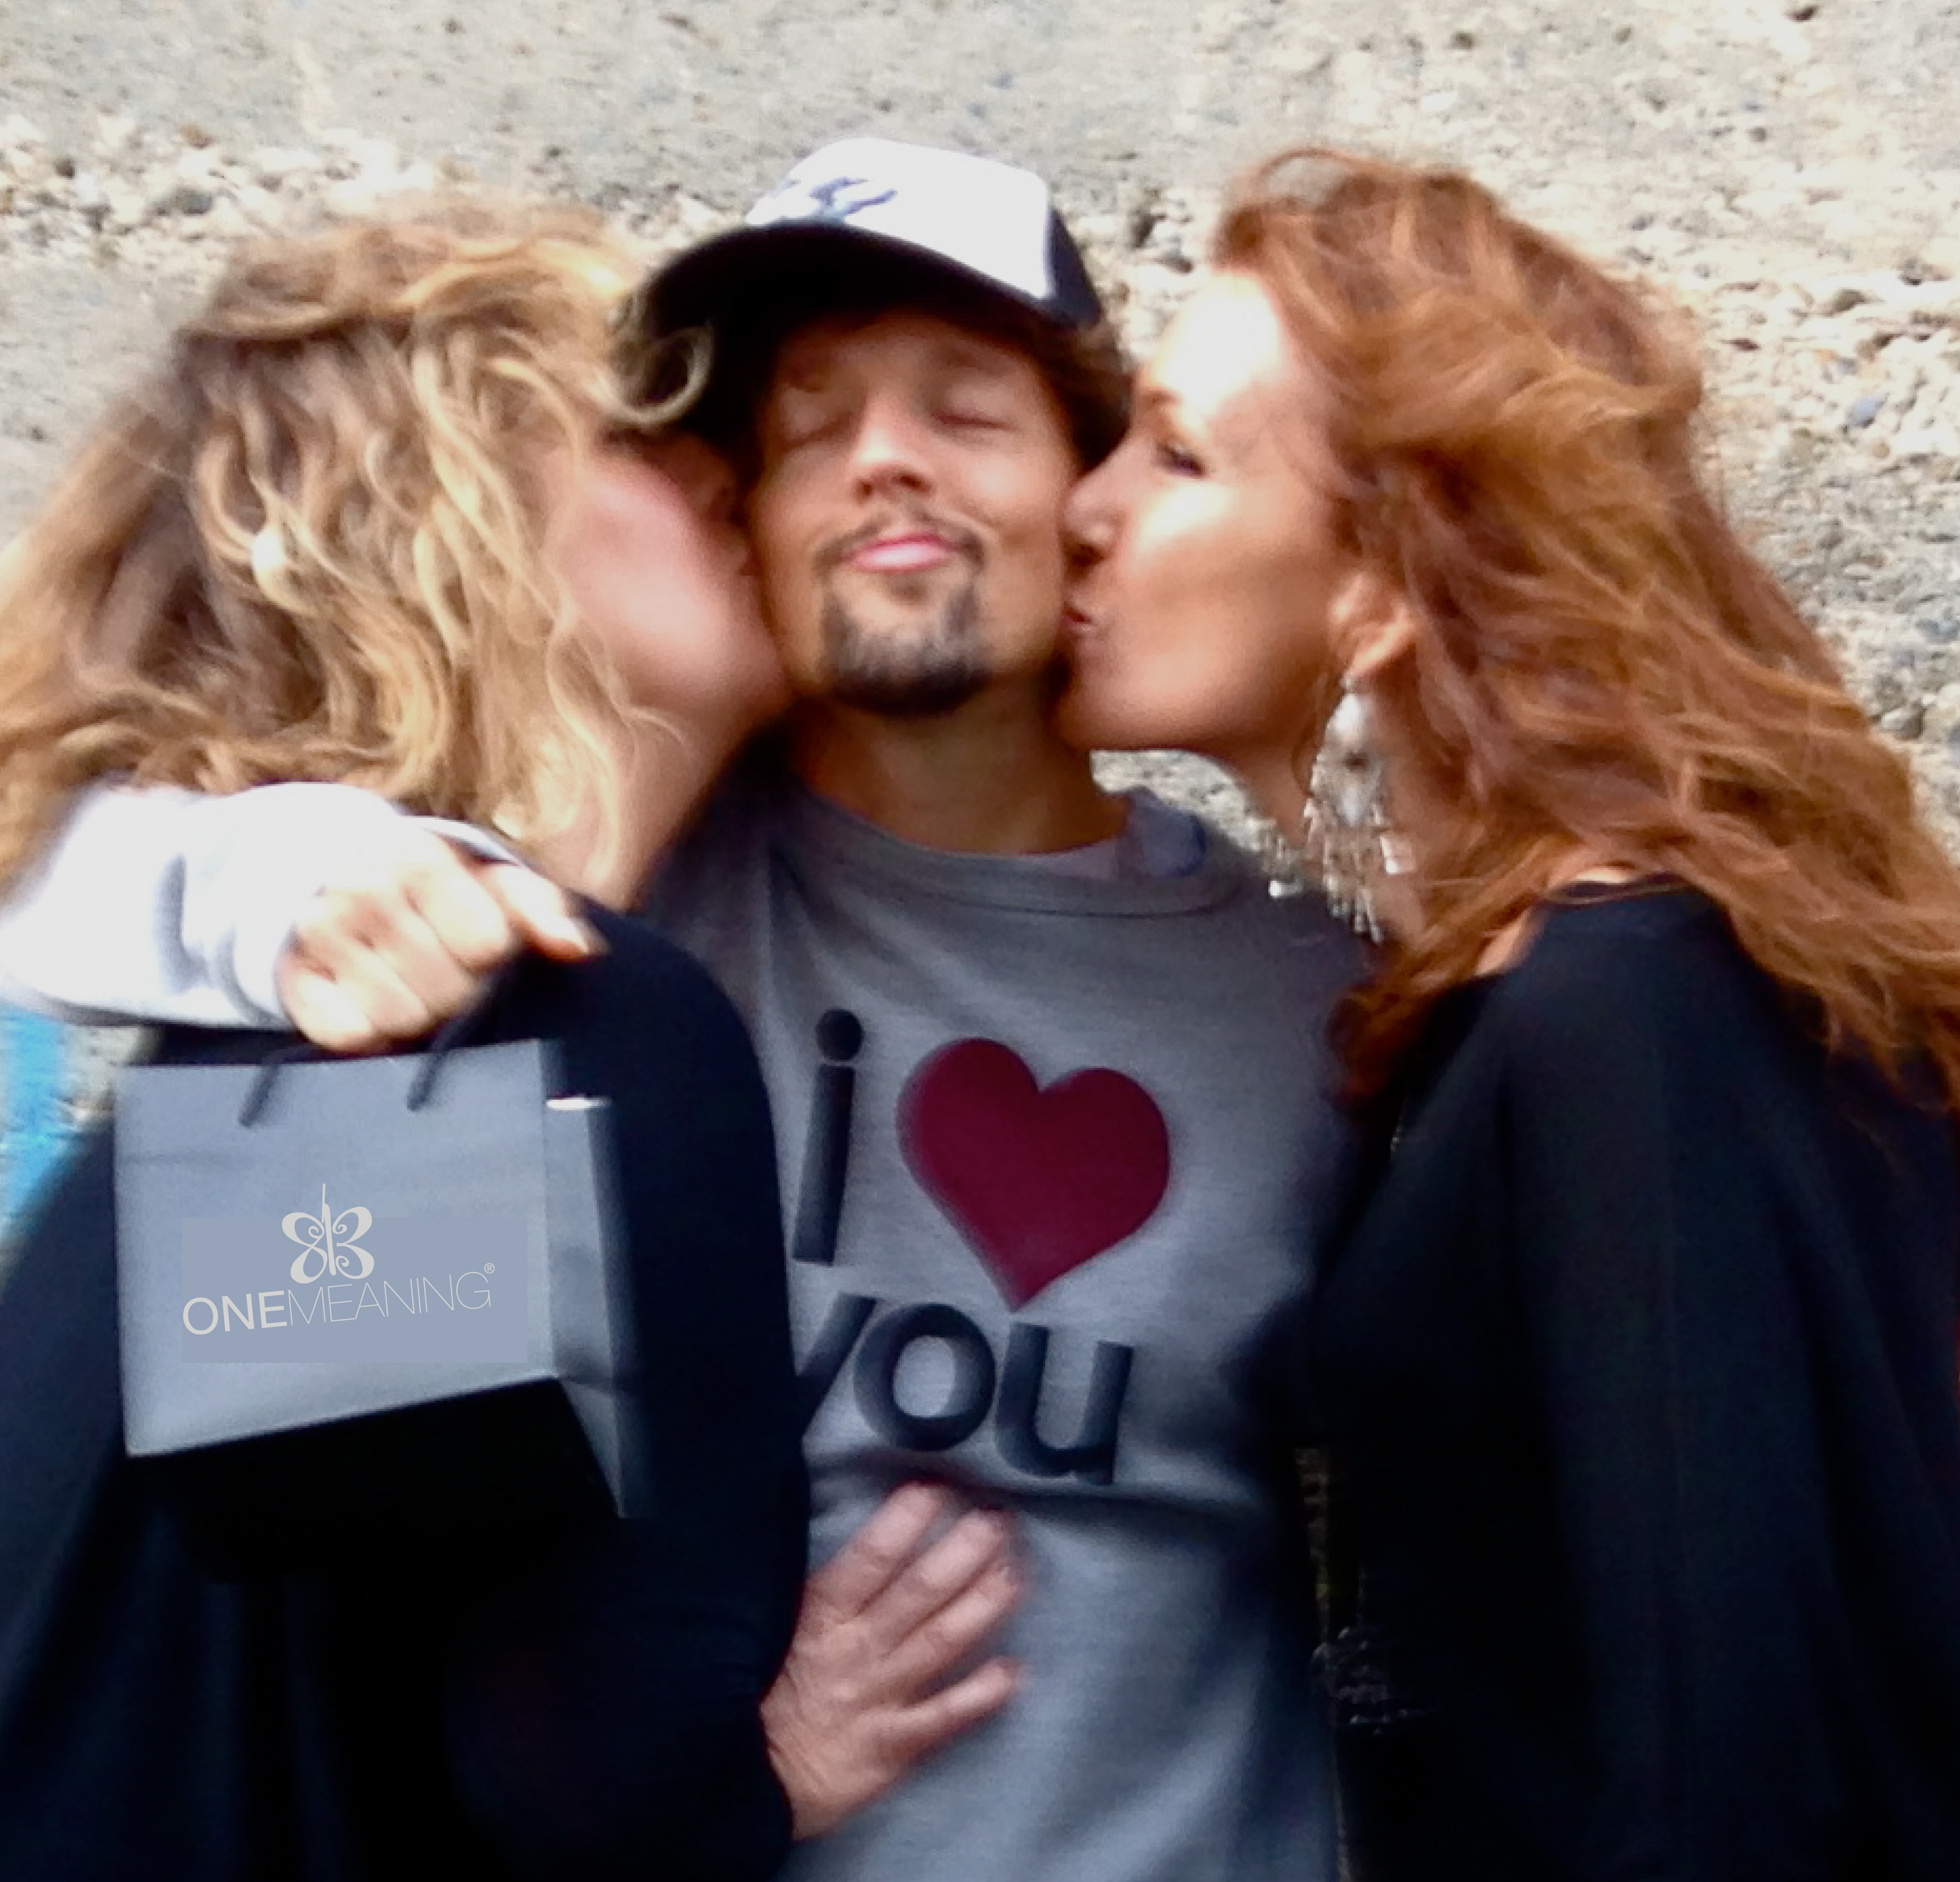 Ingrid and Karen of One Meaning with Jason Mraz in between.